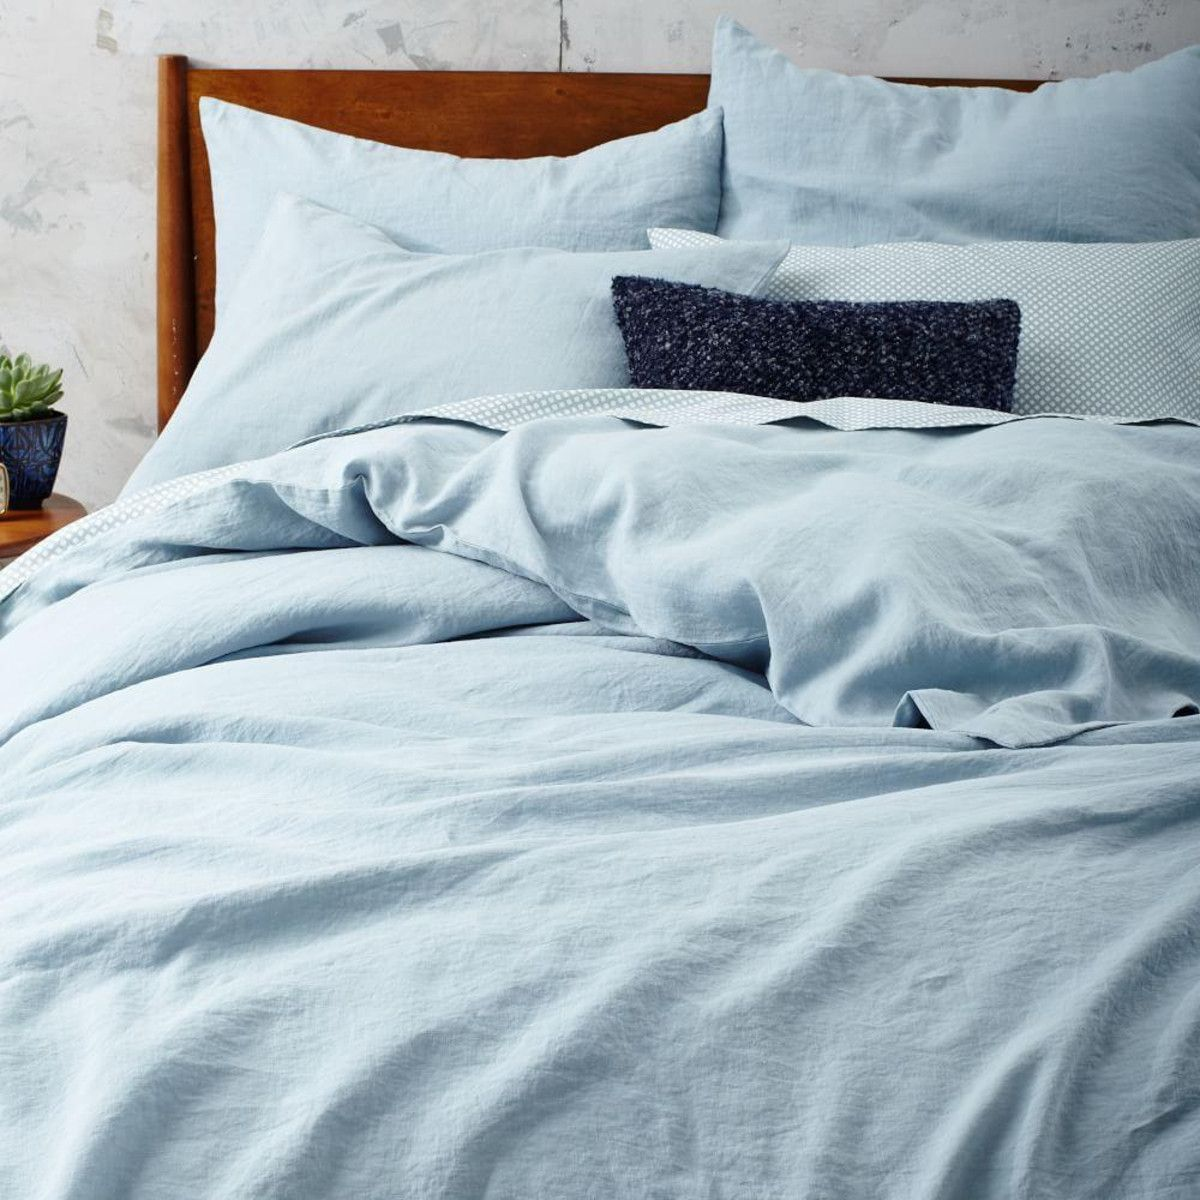 shop duvchar store cover flax in duvet bedding bed charcoal b linen